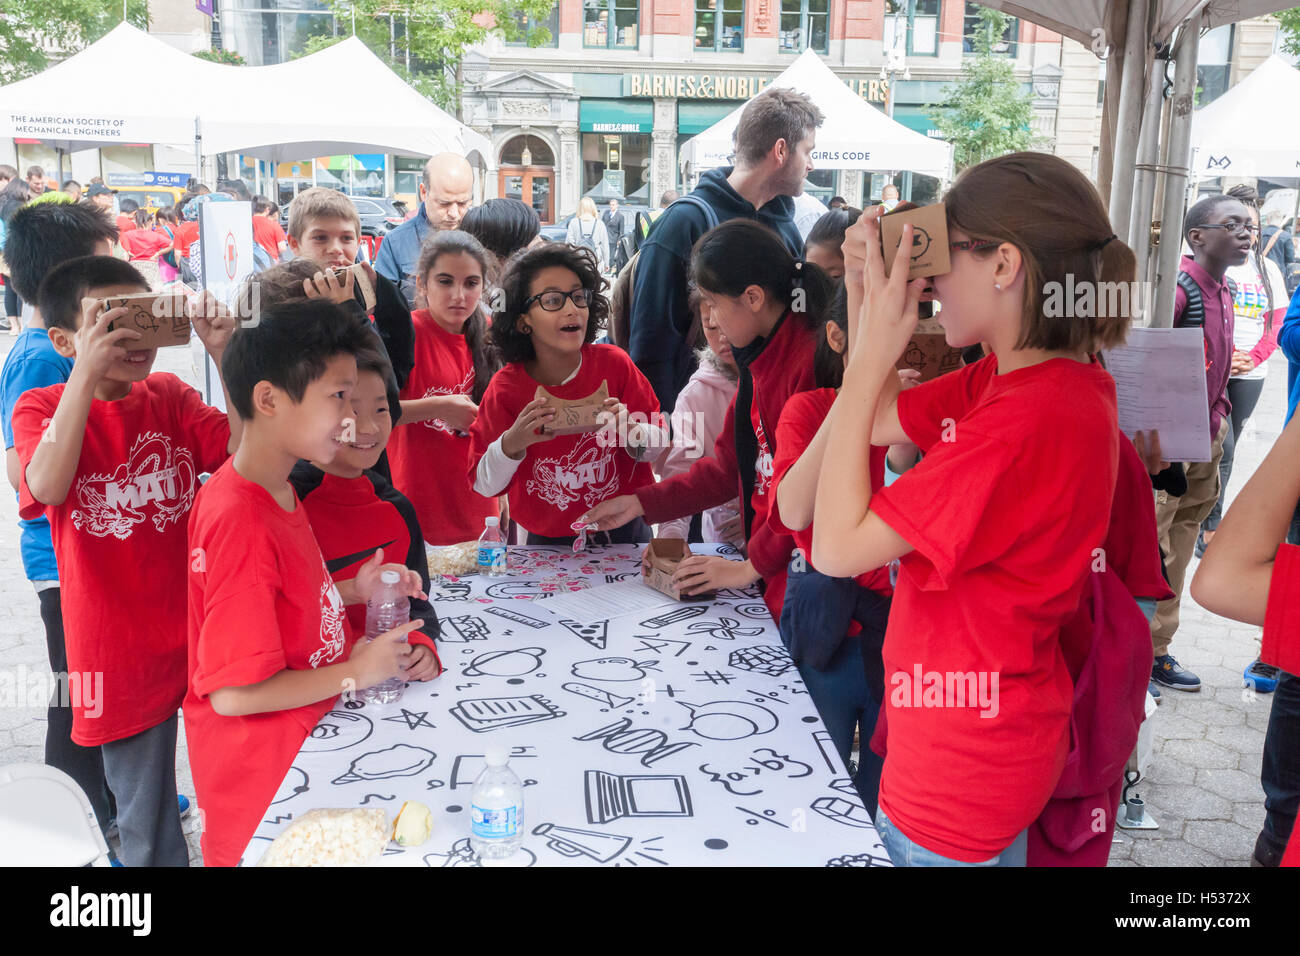 Participants in the Geek Street Fair in Union Square Park in New York experiment with Google Expeditions cardboard - Stock Image